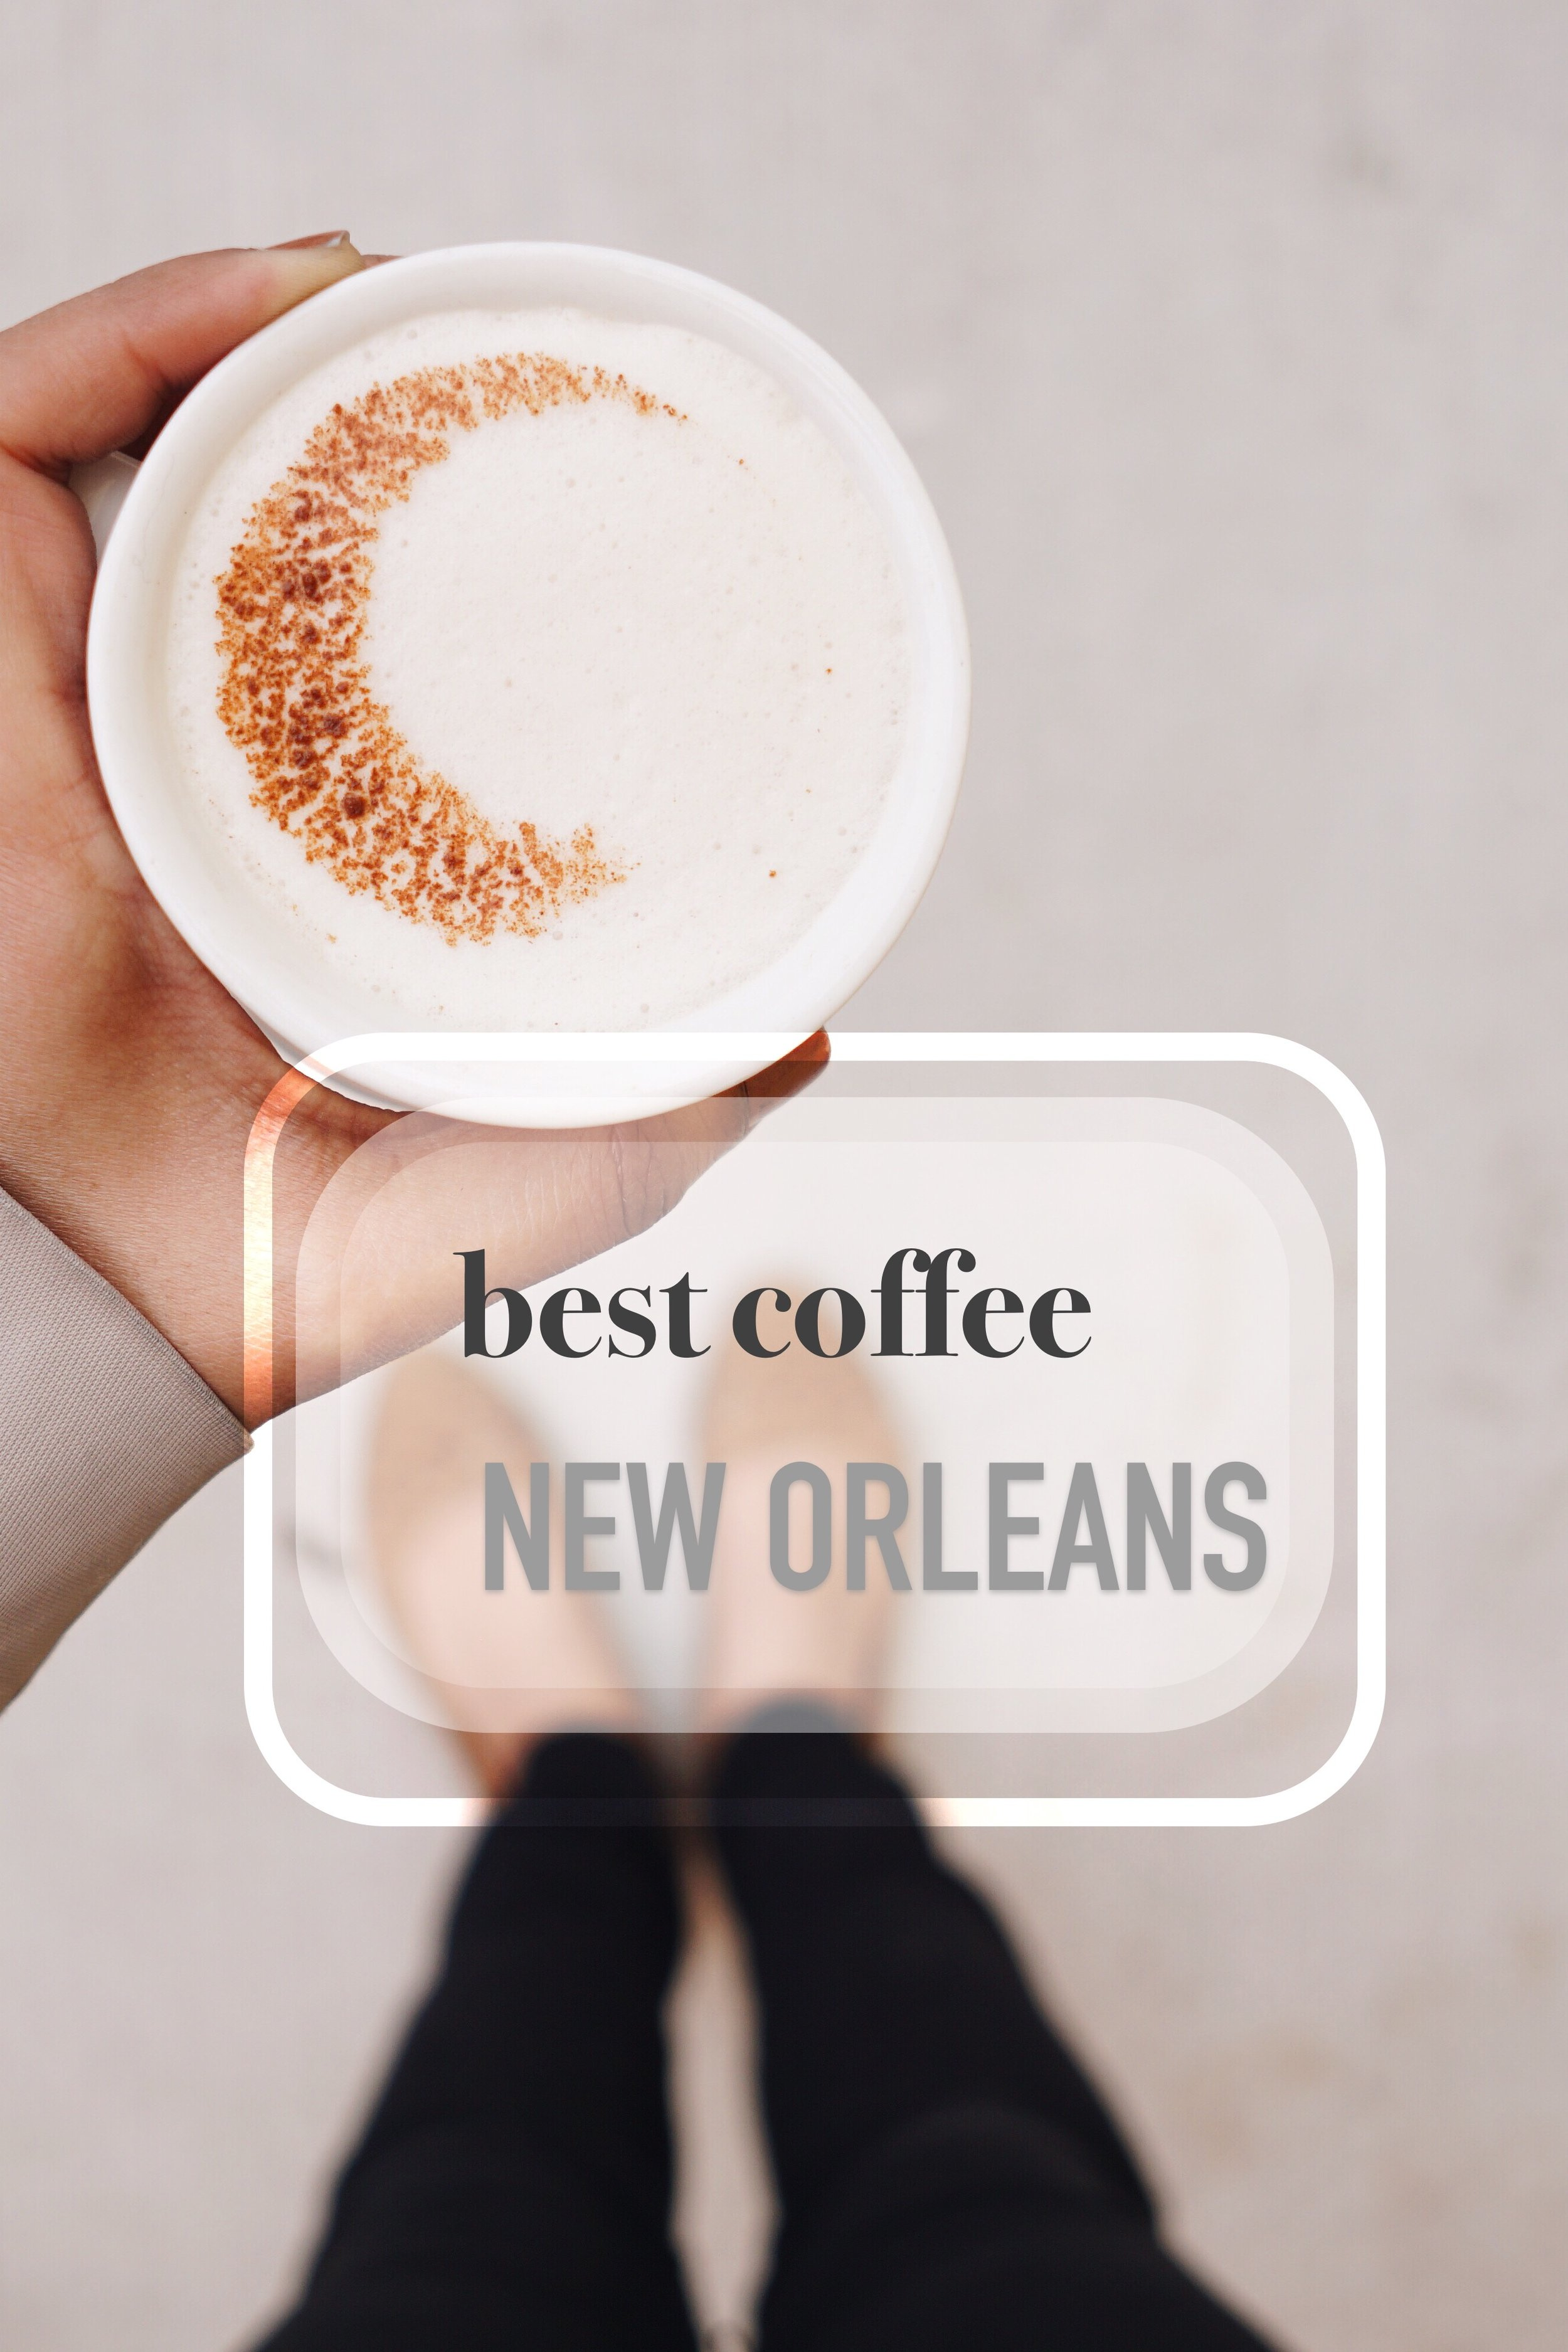 New Orleans coffee for your pinning pleasure.